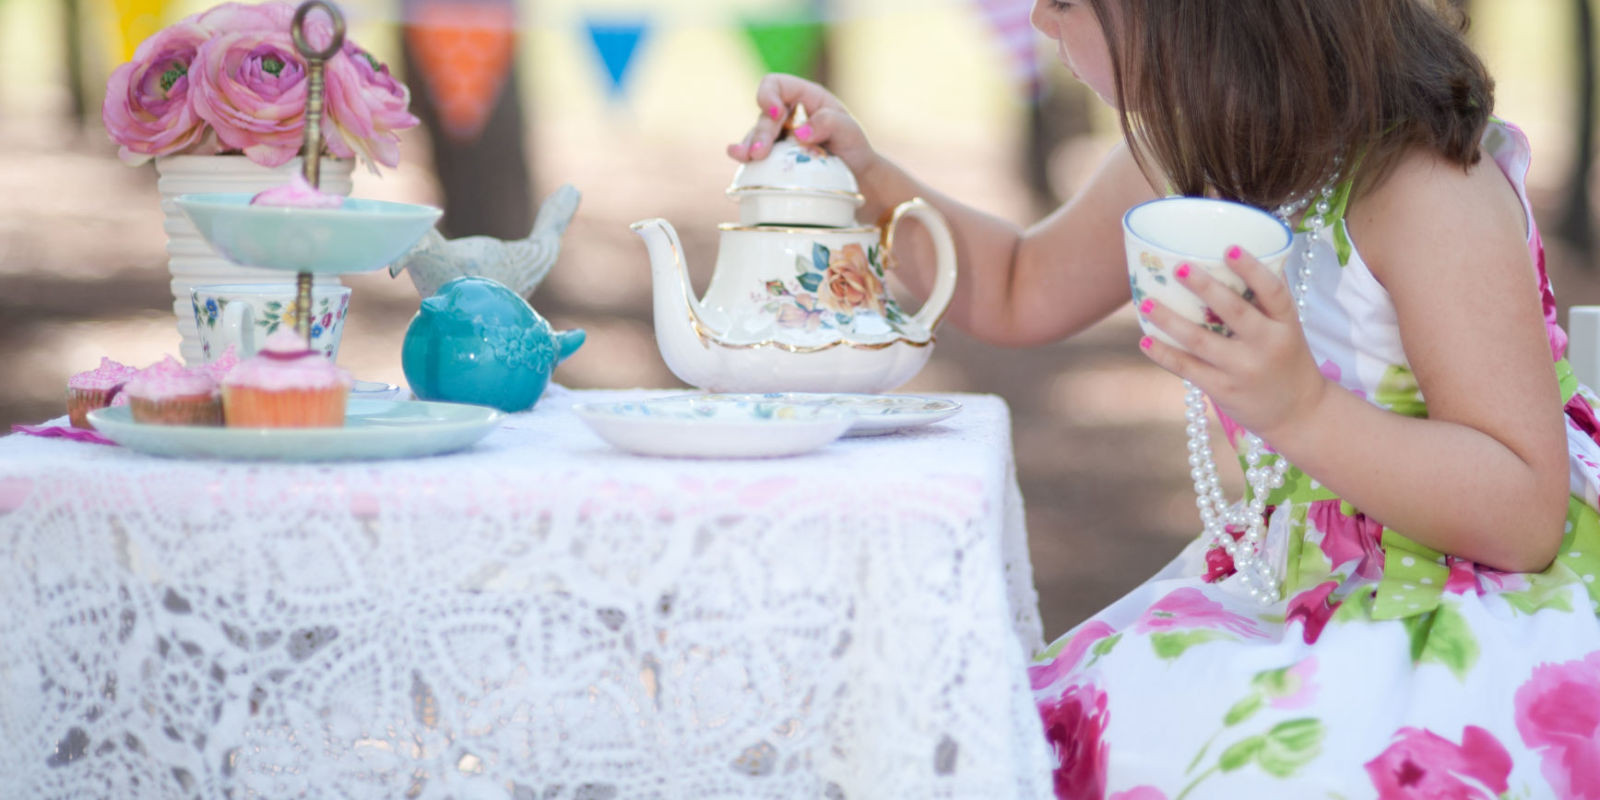 Princess Tea Party Birthday Ideas  How to Throw a Princess Tea Party Themed Kids Birthday